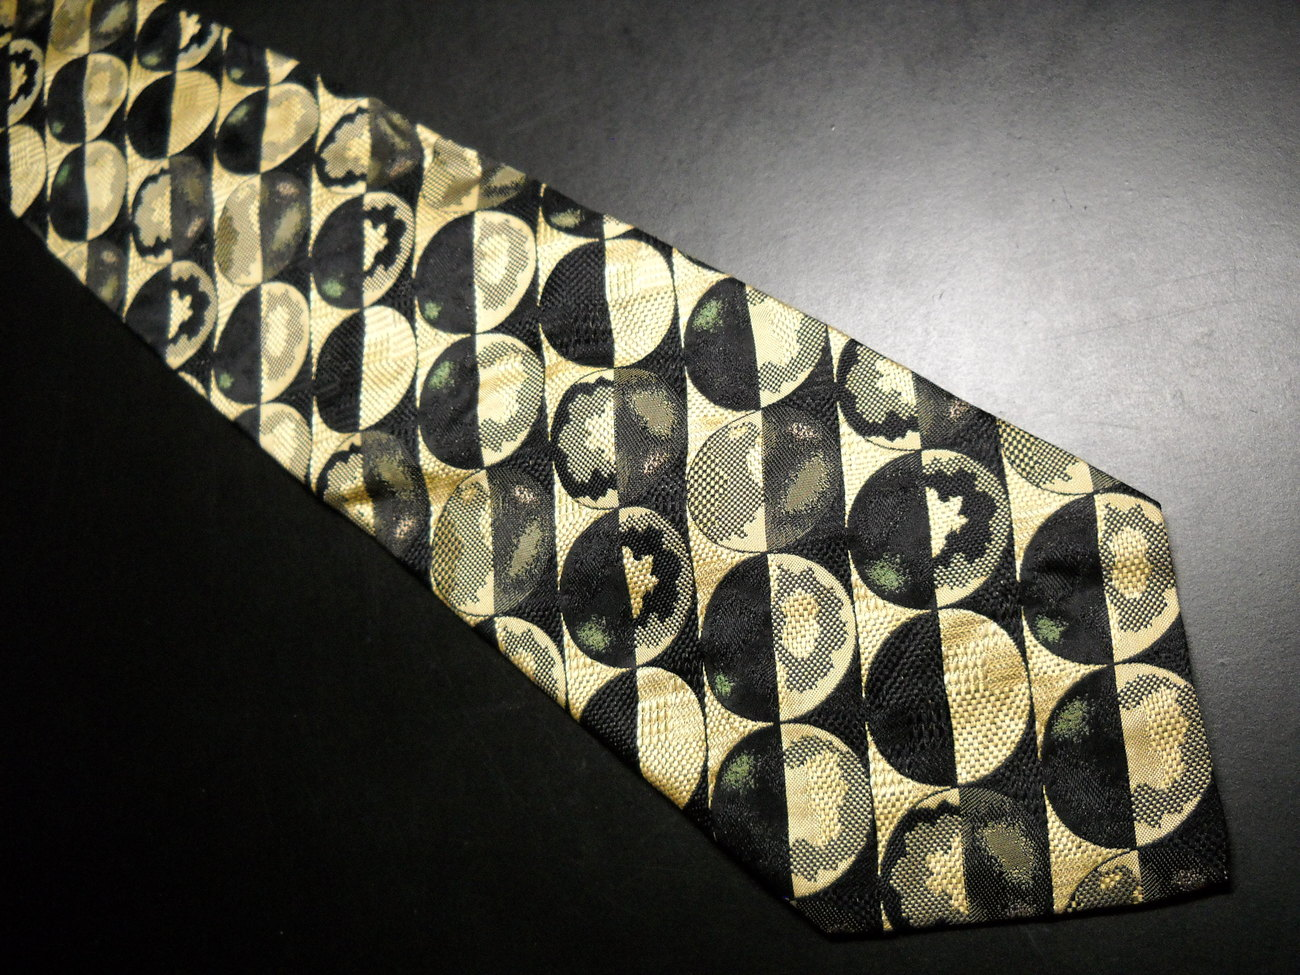 Emanuele Cravatte Neck Tie Italian Gold and Black Limited Hand Made in Italy